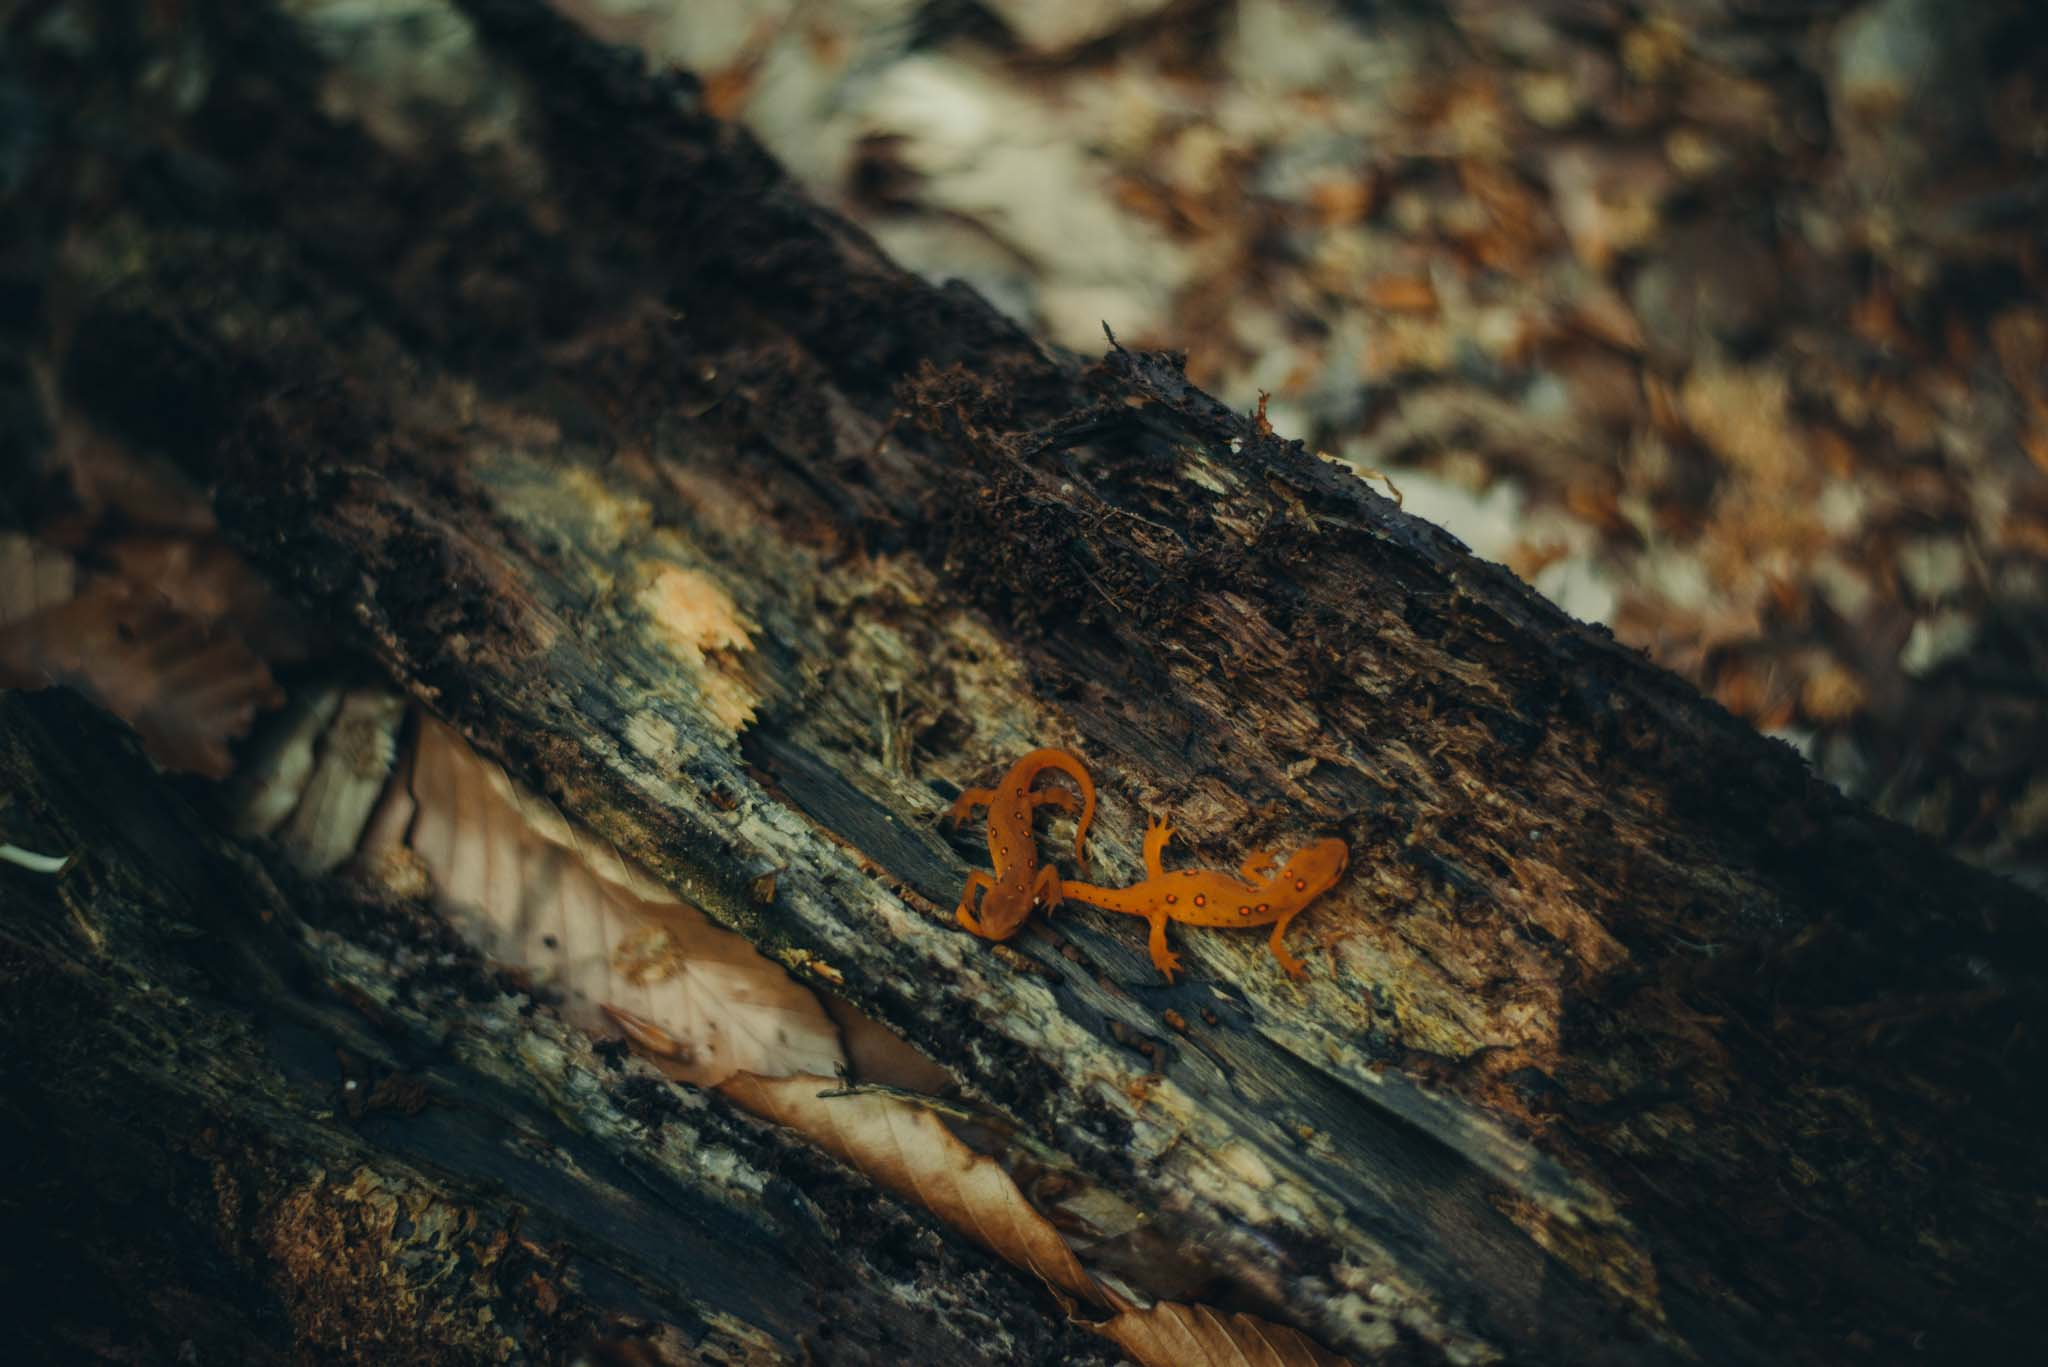 Two Red-eft (terrestrial juvenile stage) of the Red-spotted Newt found under a damp log.